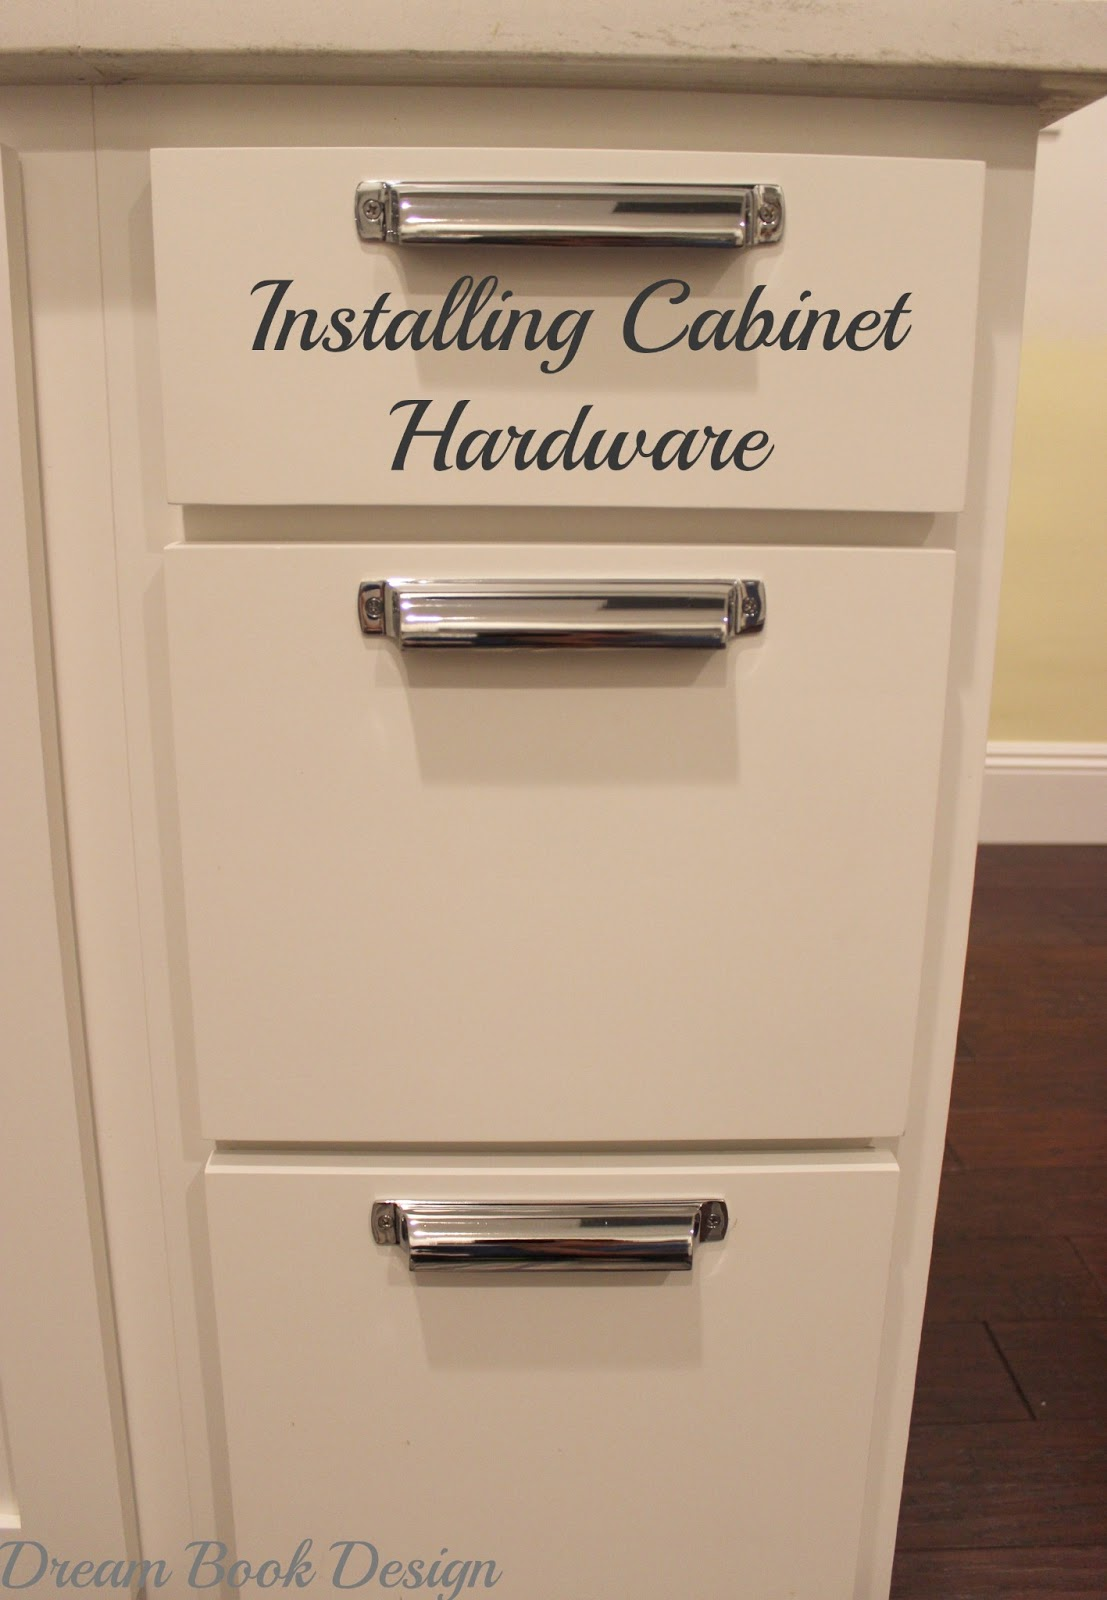 how to install kitchen cabinet hardware tutorial install kitchen cabinets How To Install Kitchen Cabinet Hardware Tutorial